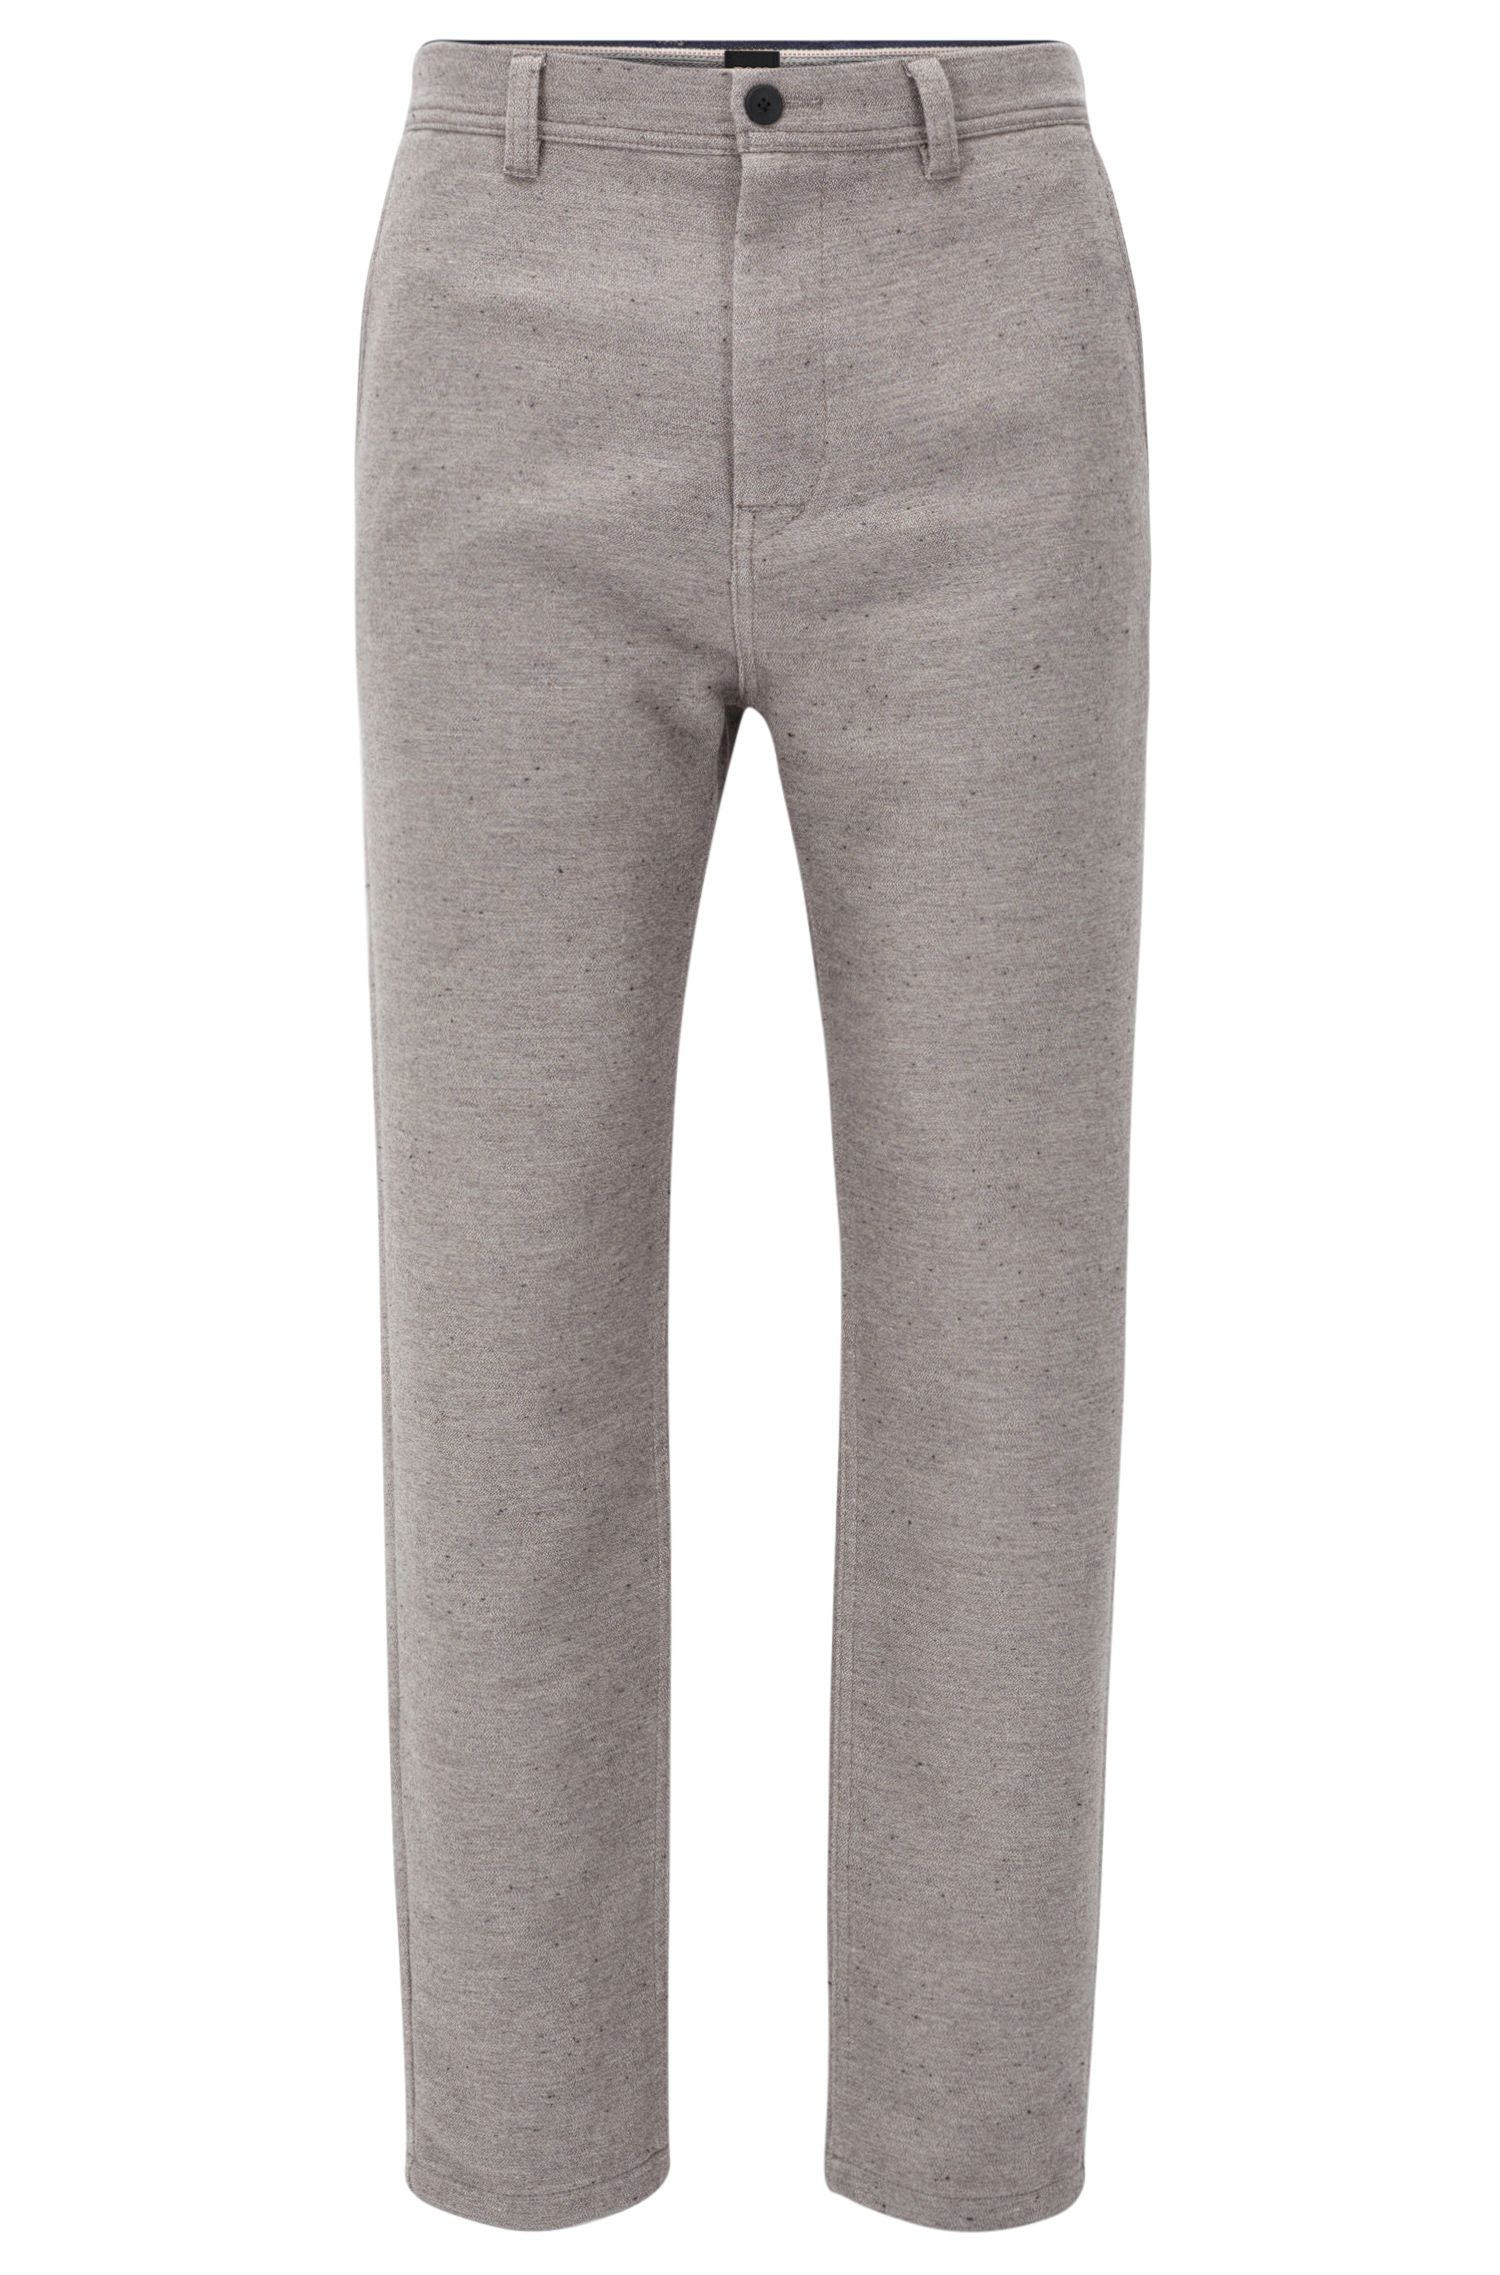 Tapered-fit trousers in a cotton blend